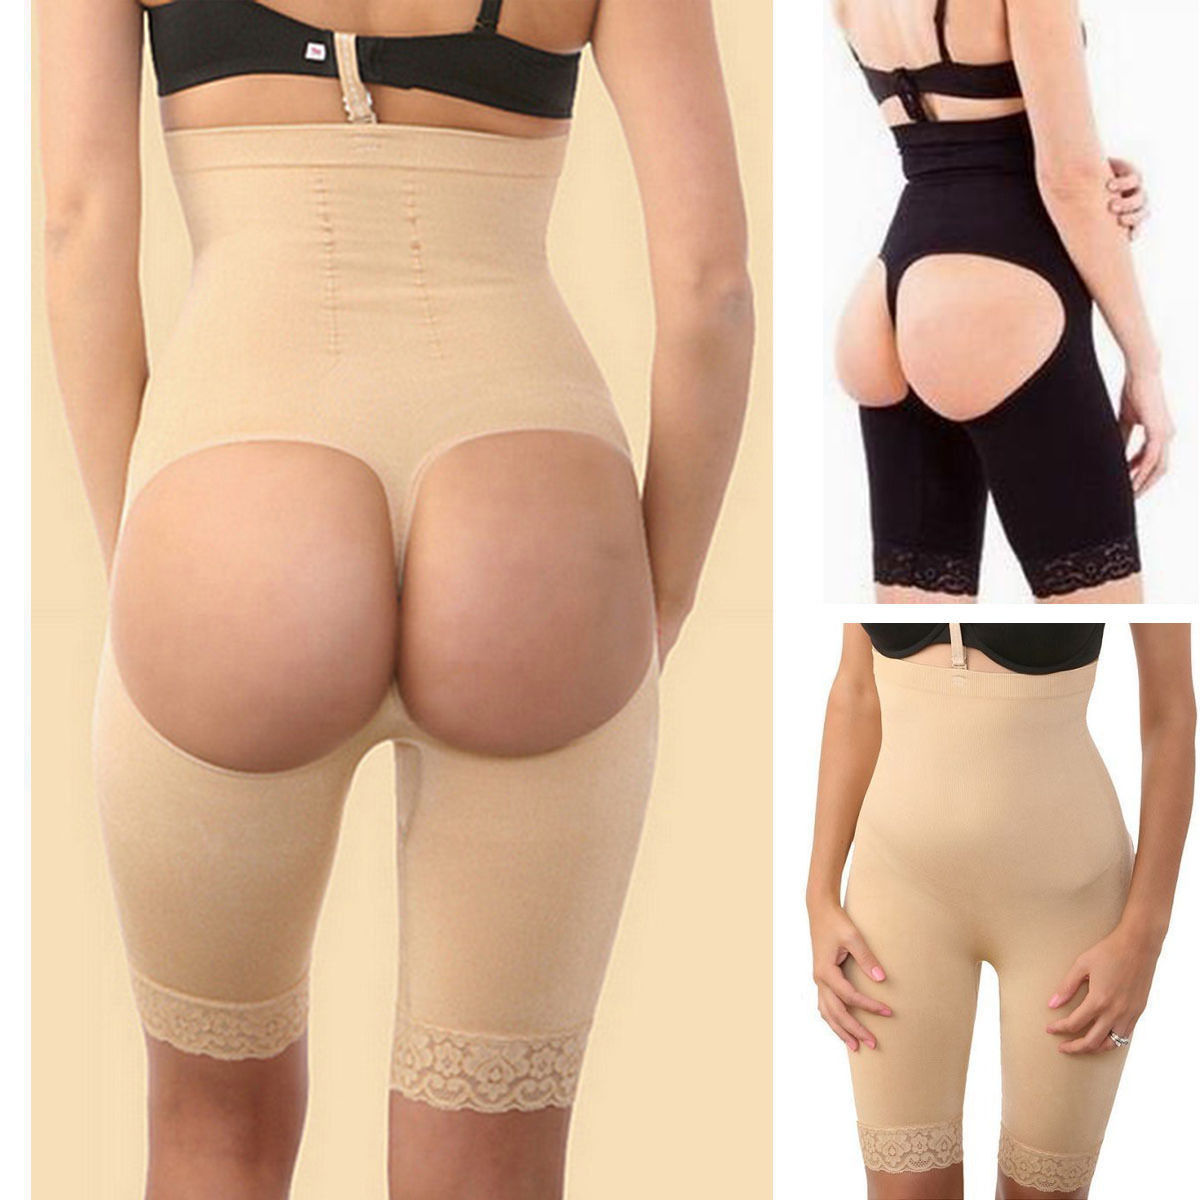 Women BRAZILIAN Butt Lifter Booty Panty Lift Up Booster Body Shaper Hip Enhancer